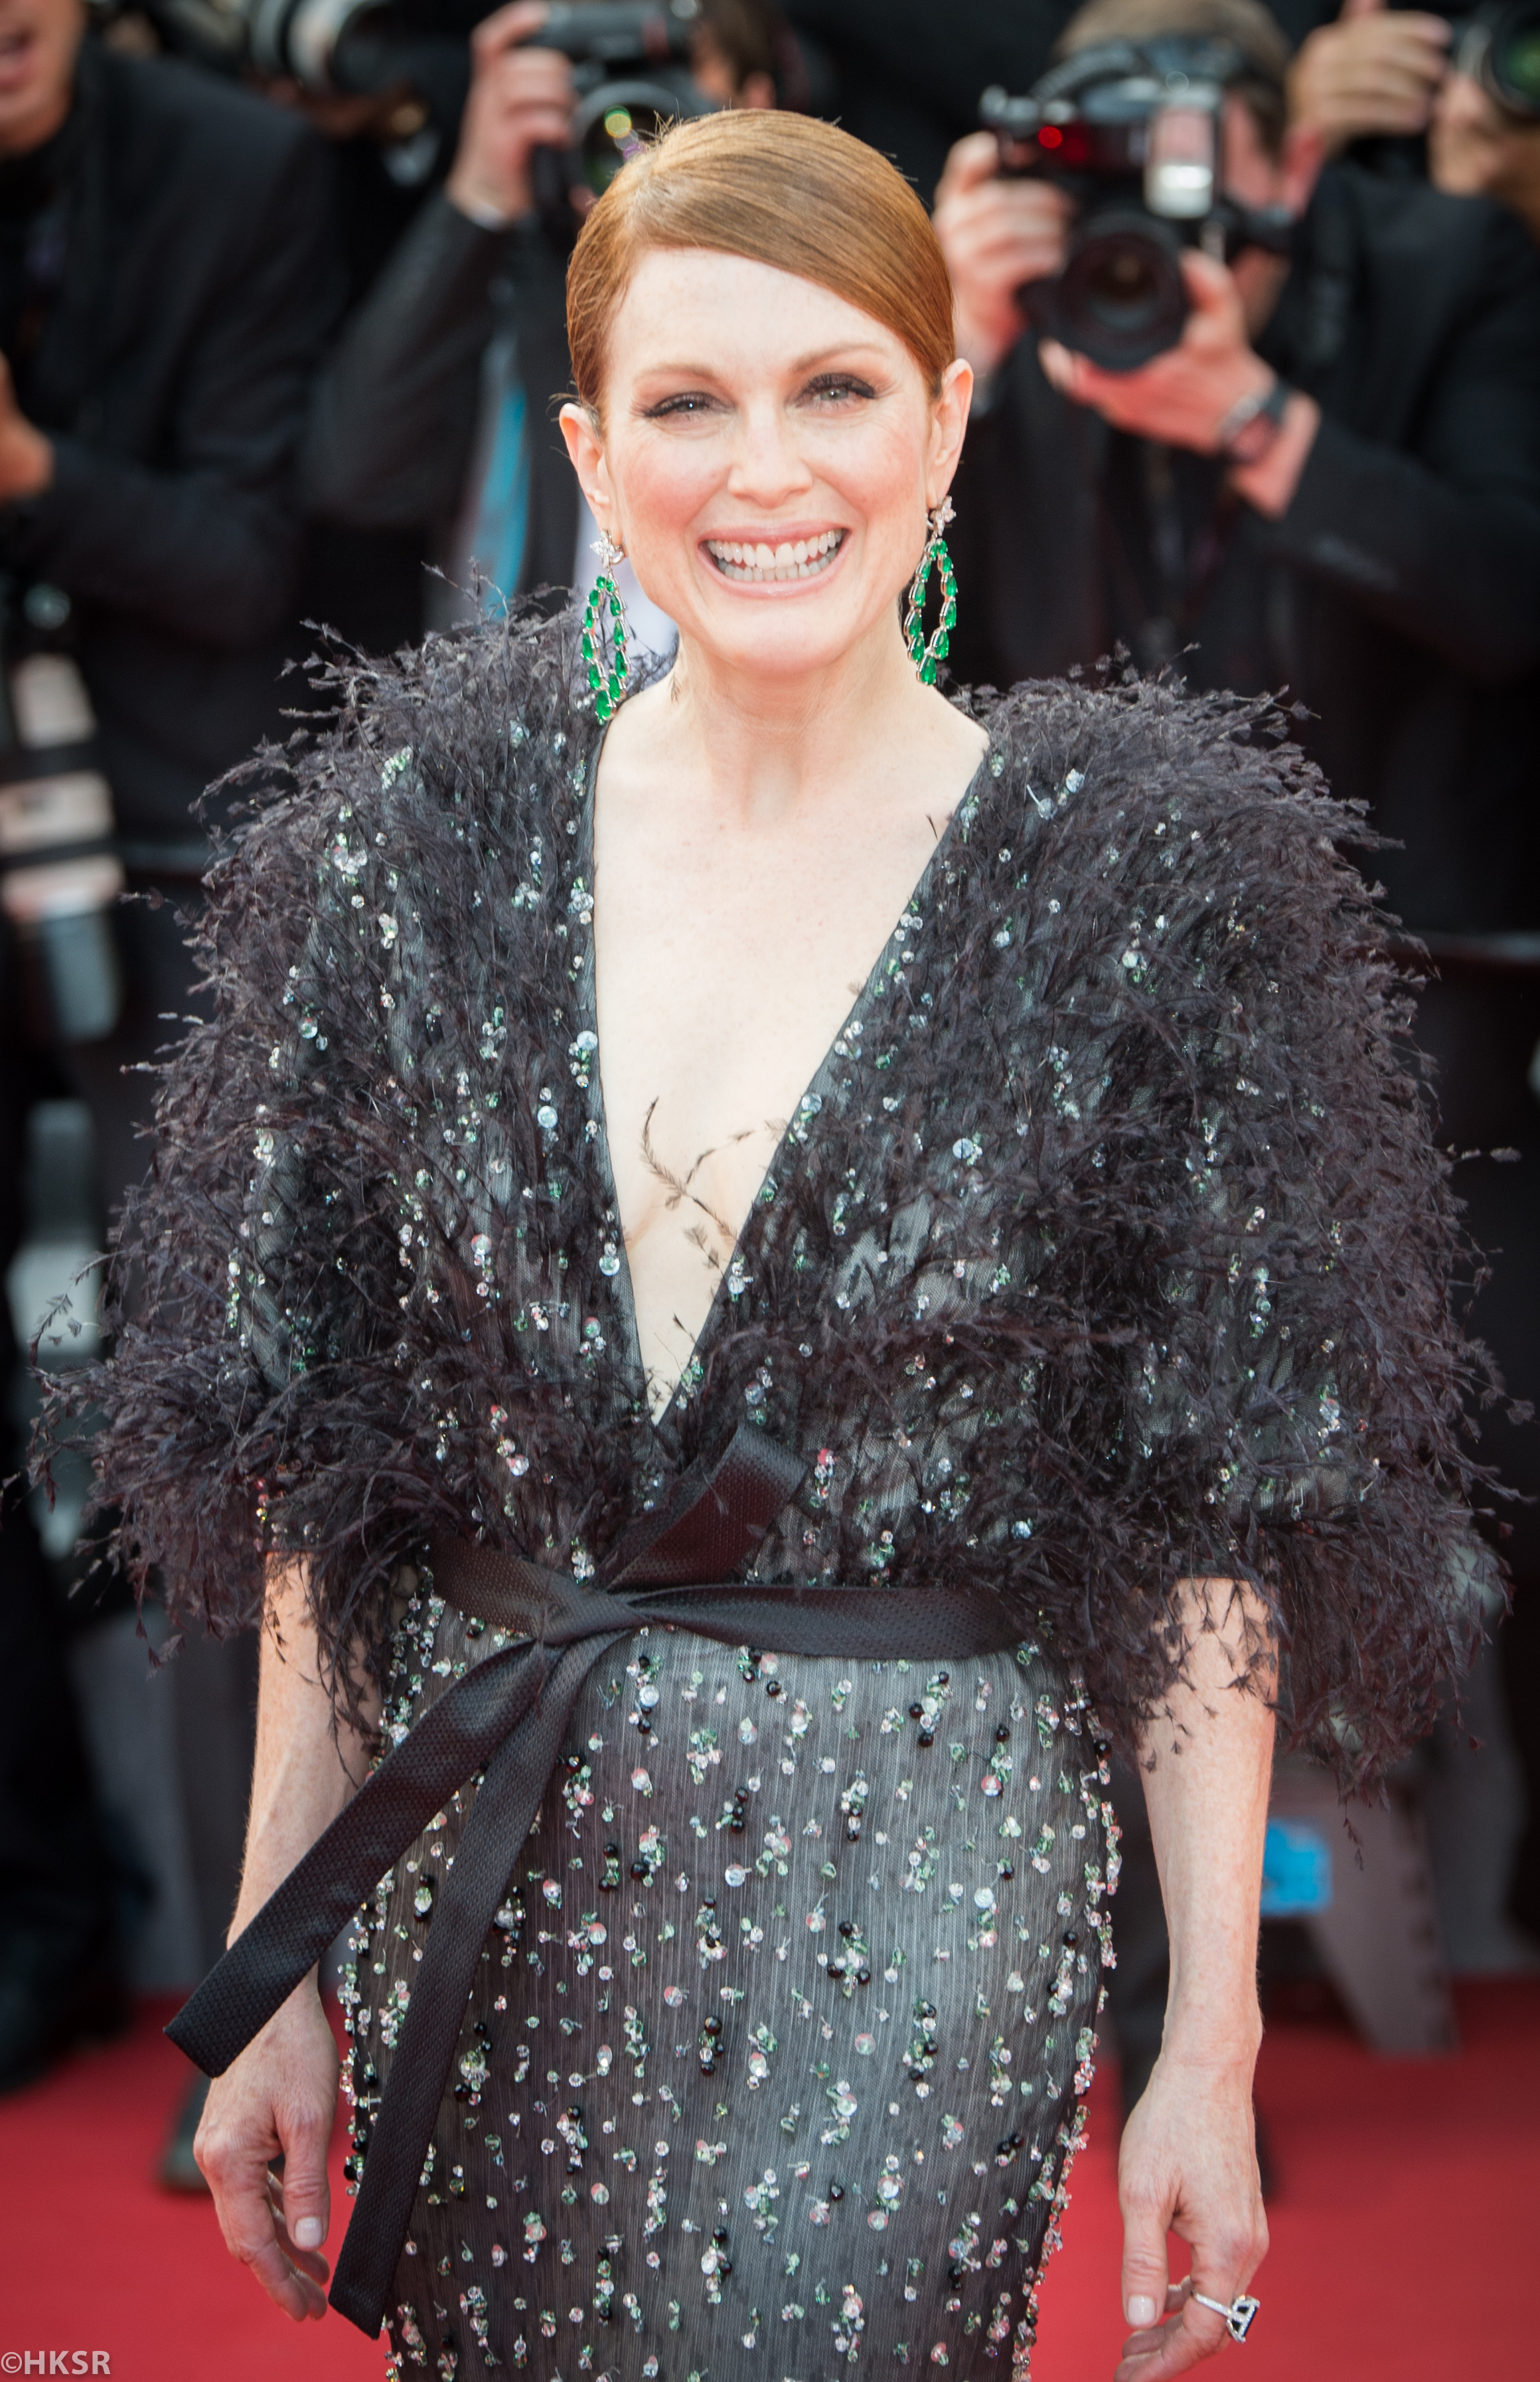 Julianne Moore looked stunning on the red carpet at Cannes 2015